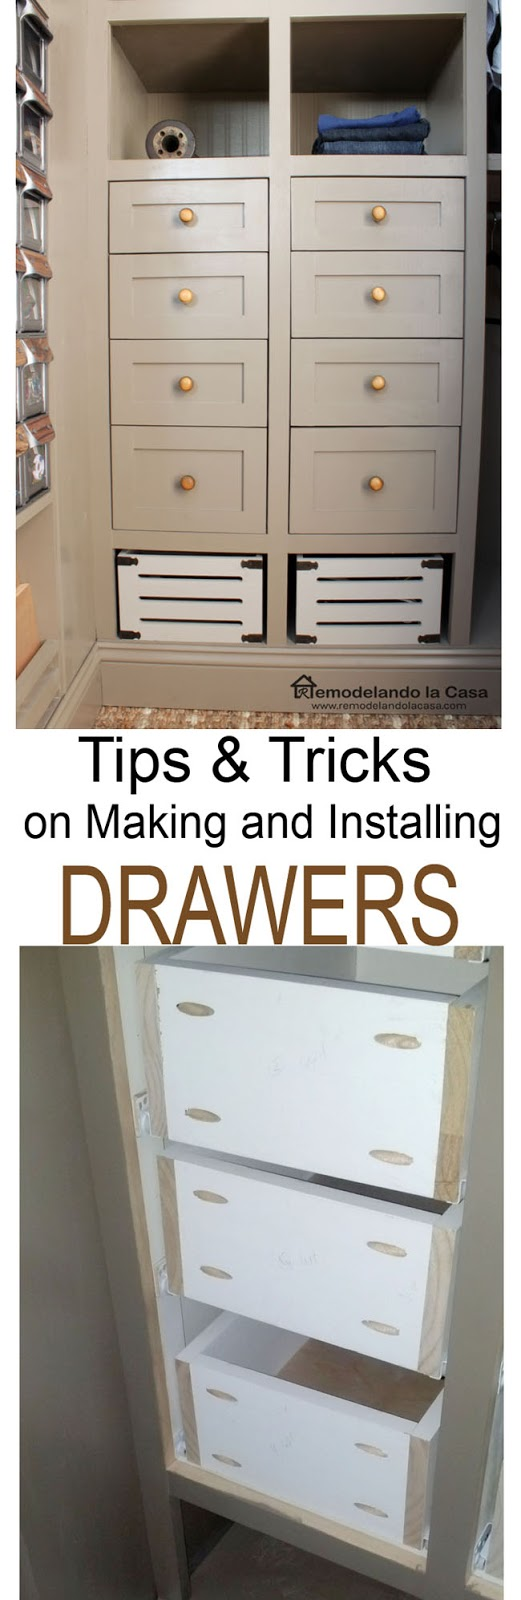 how to make and install drawers